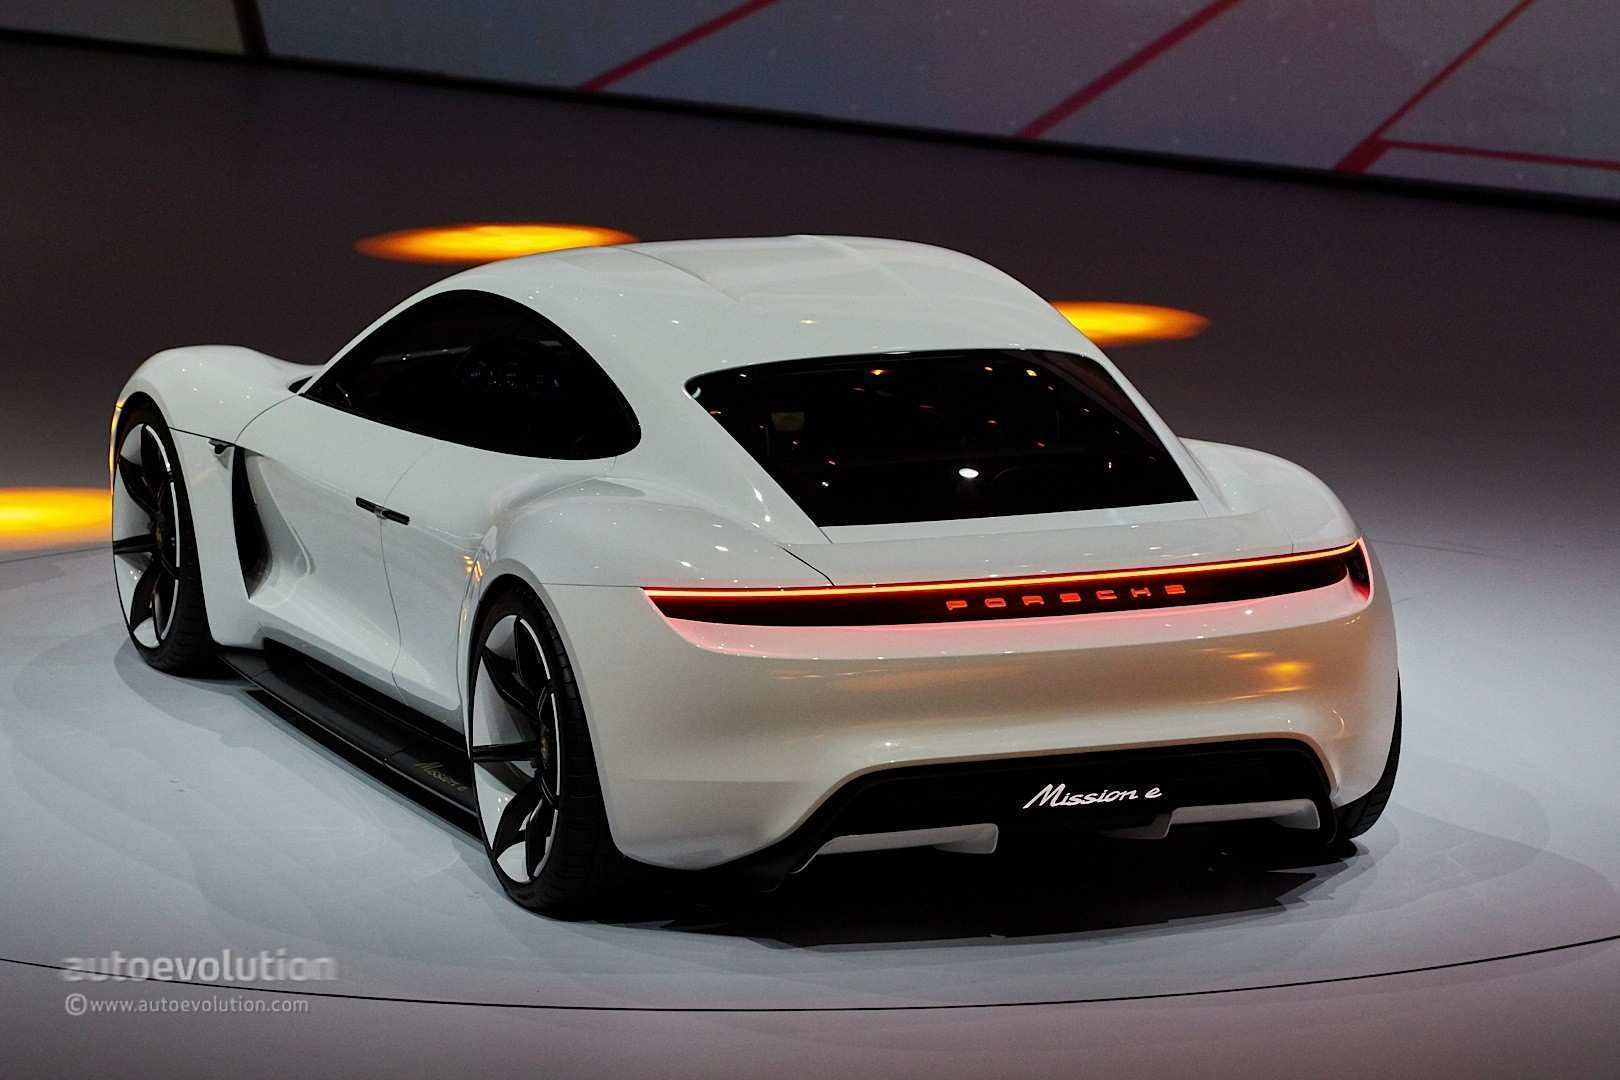 84 Best Review 2020 Porsche Mission E Interior for 2020 Porsche Mission E